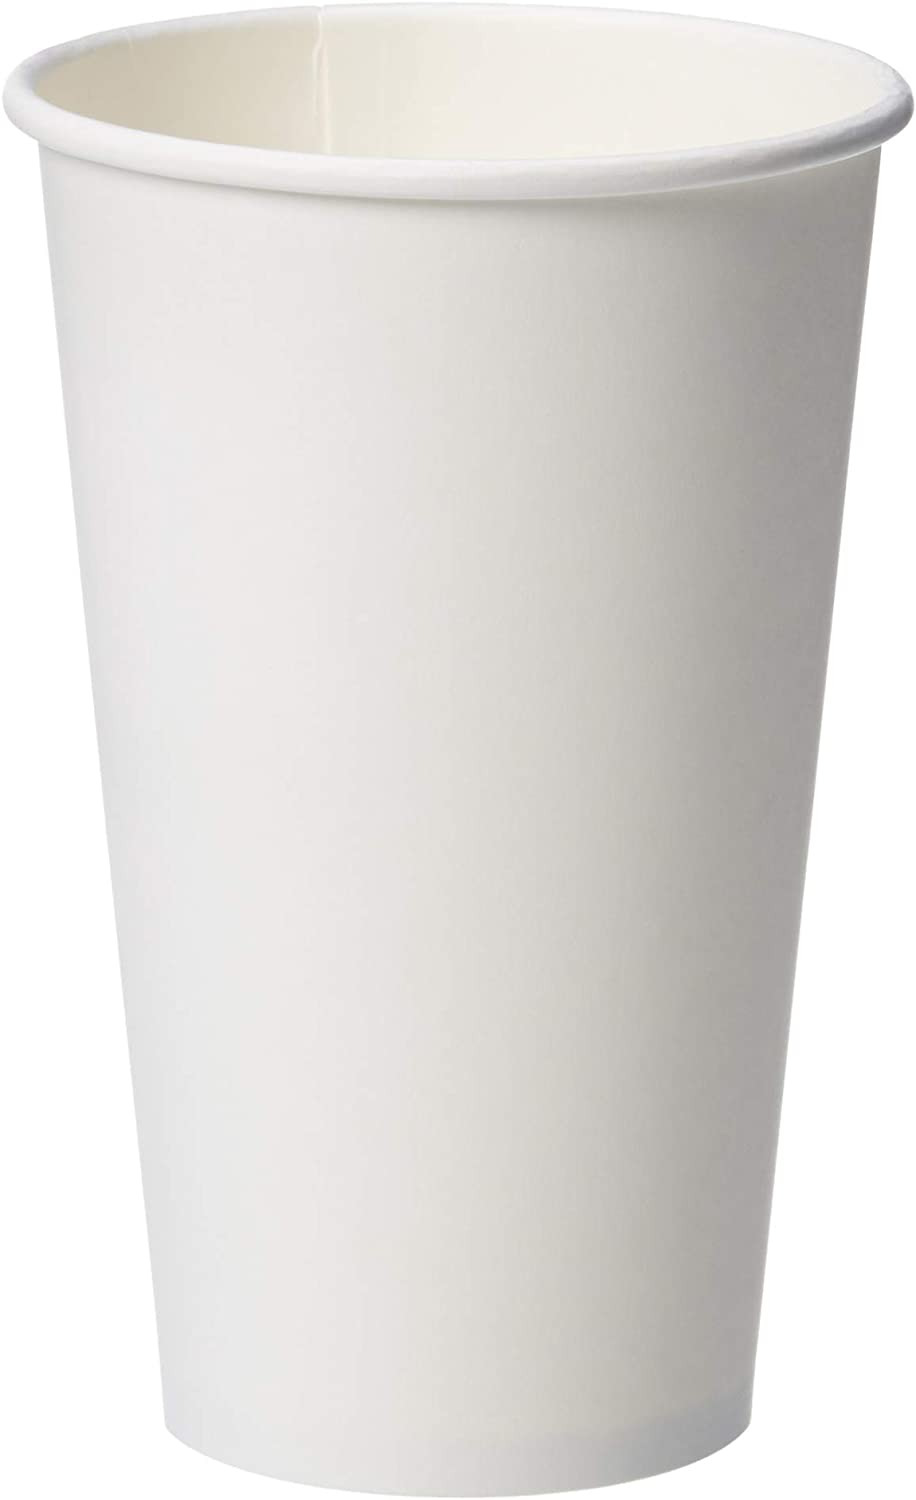 AmazonBasics Compostable 16 oz. Hot Paper Cup, Pack of 1,000